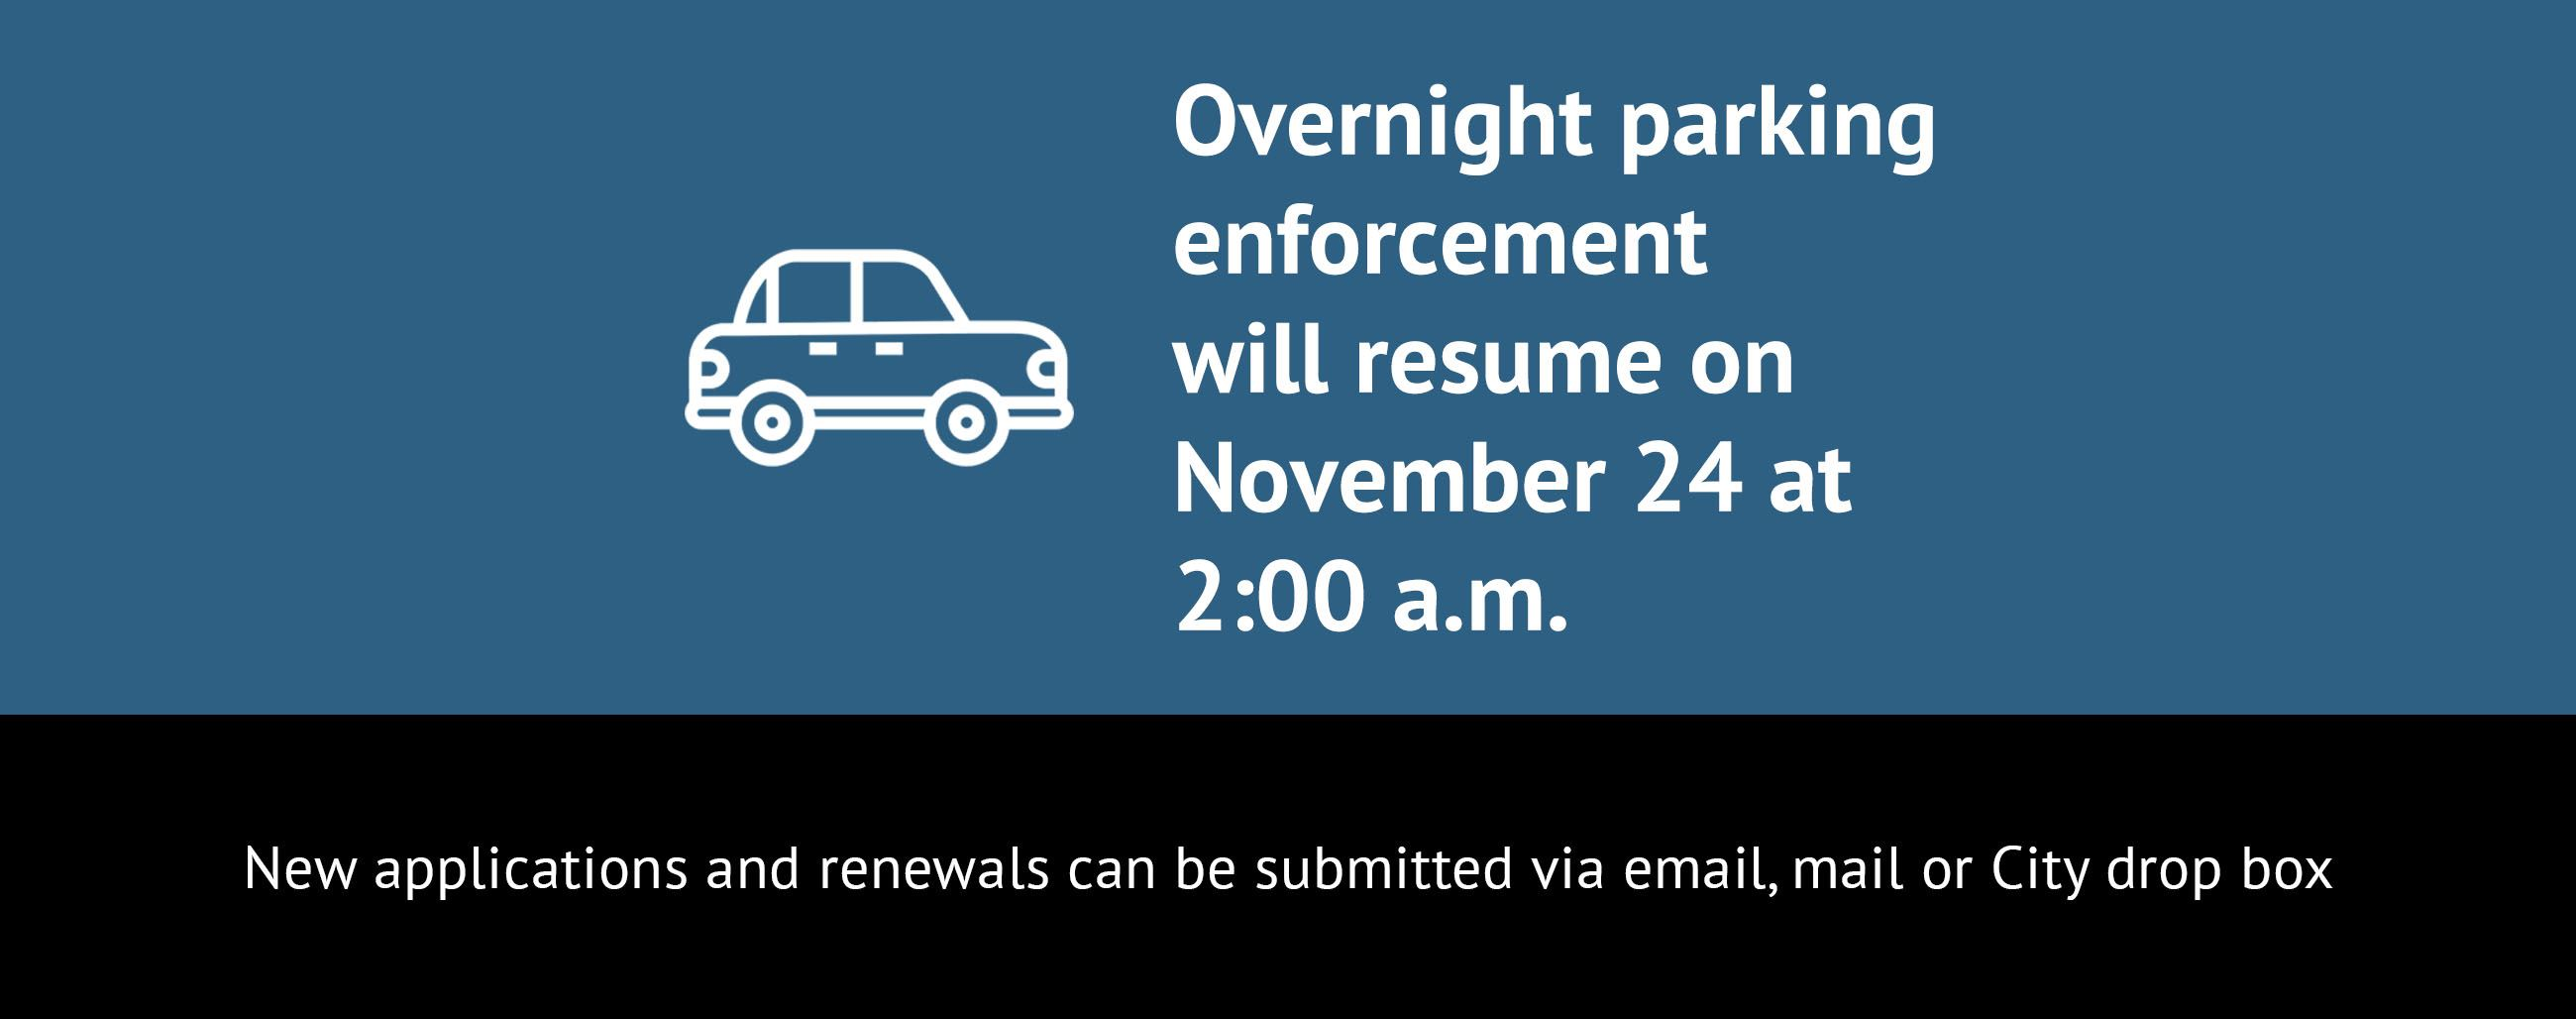 Update: Overnight parking enforcement will  resume on November 24 at 2:00 a.m.